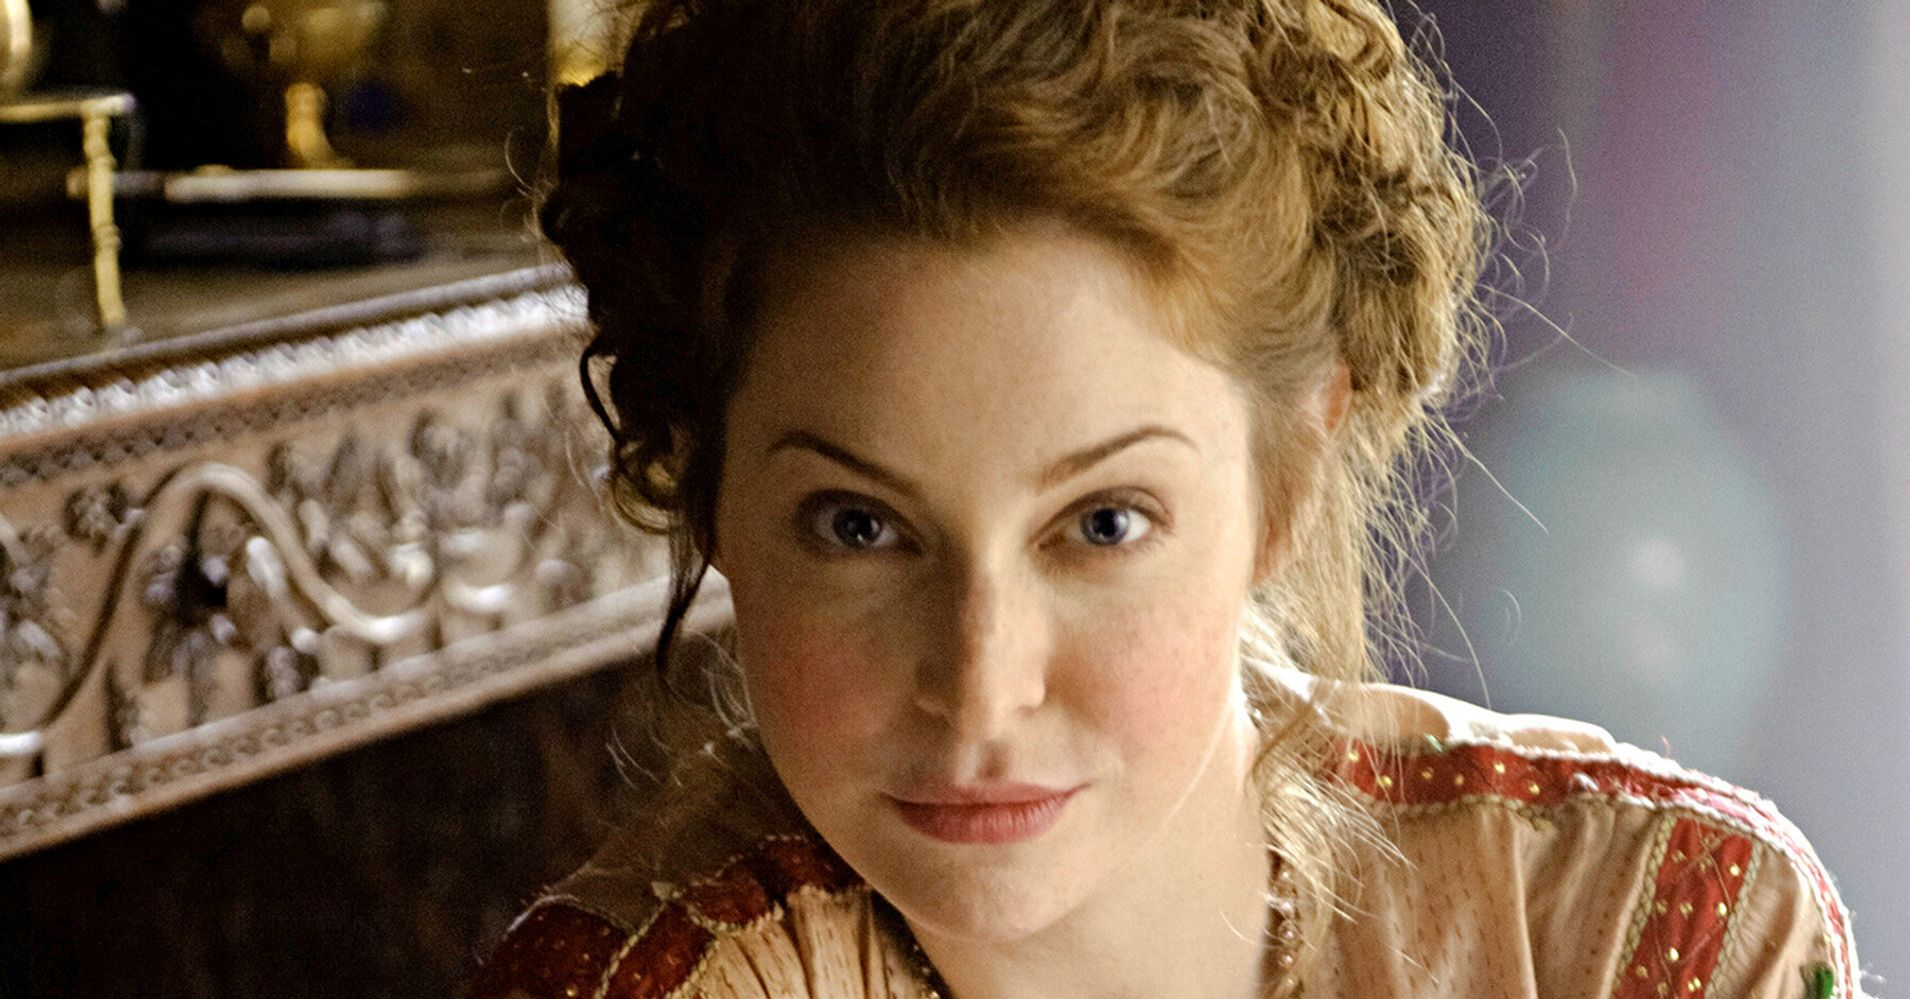 Esmé Bianco Played A Prostitute On 'Game Of Thrones,' Not Knowing Her Own Trauma